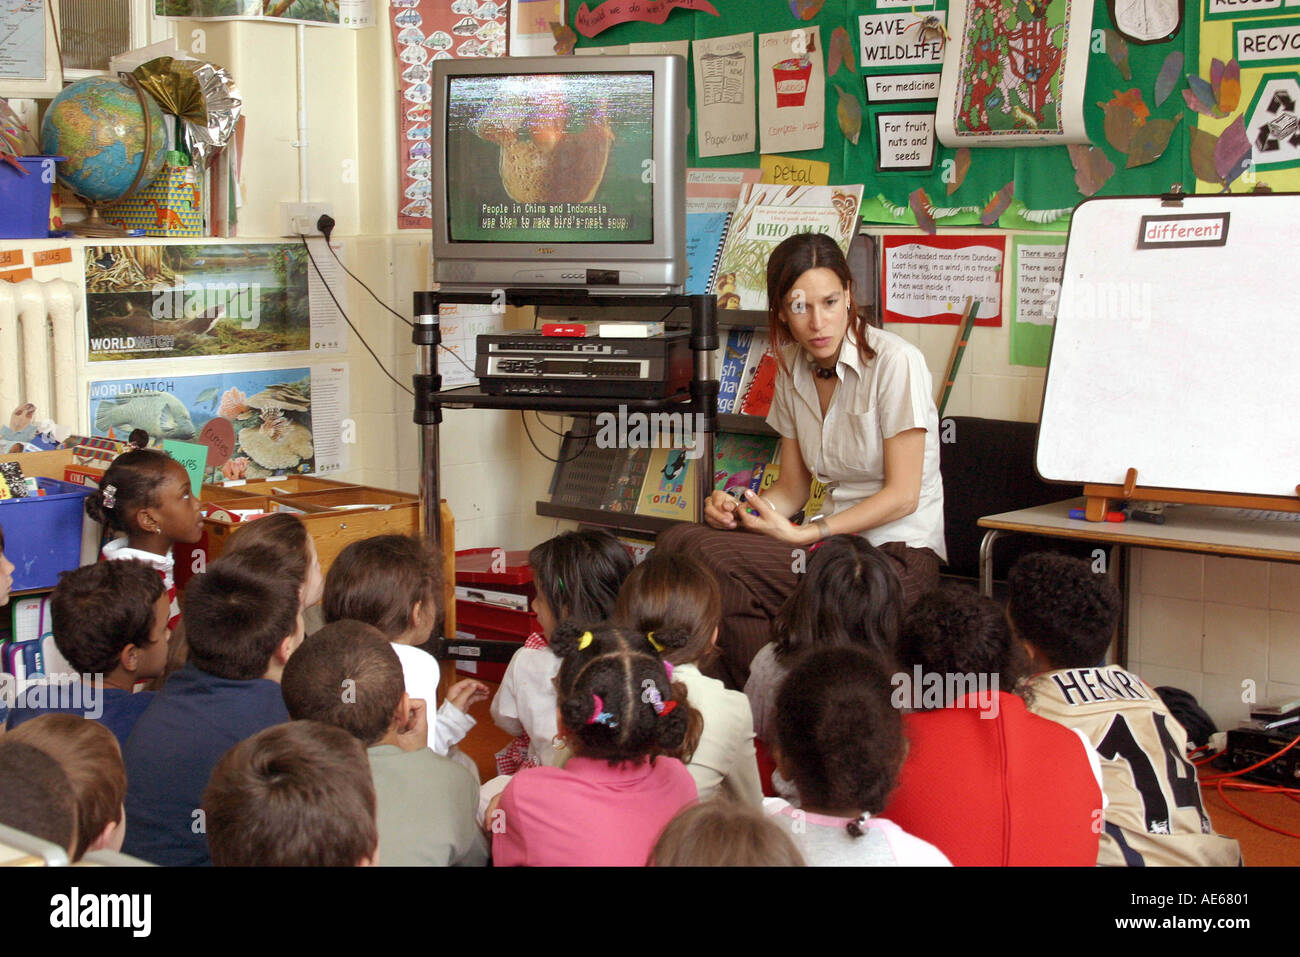 Primary school children watching television educational programme - Stock Image